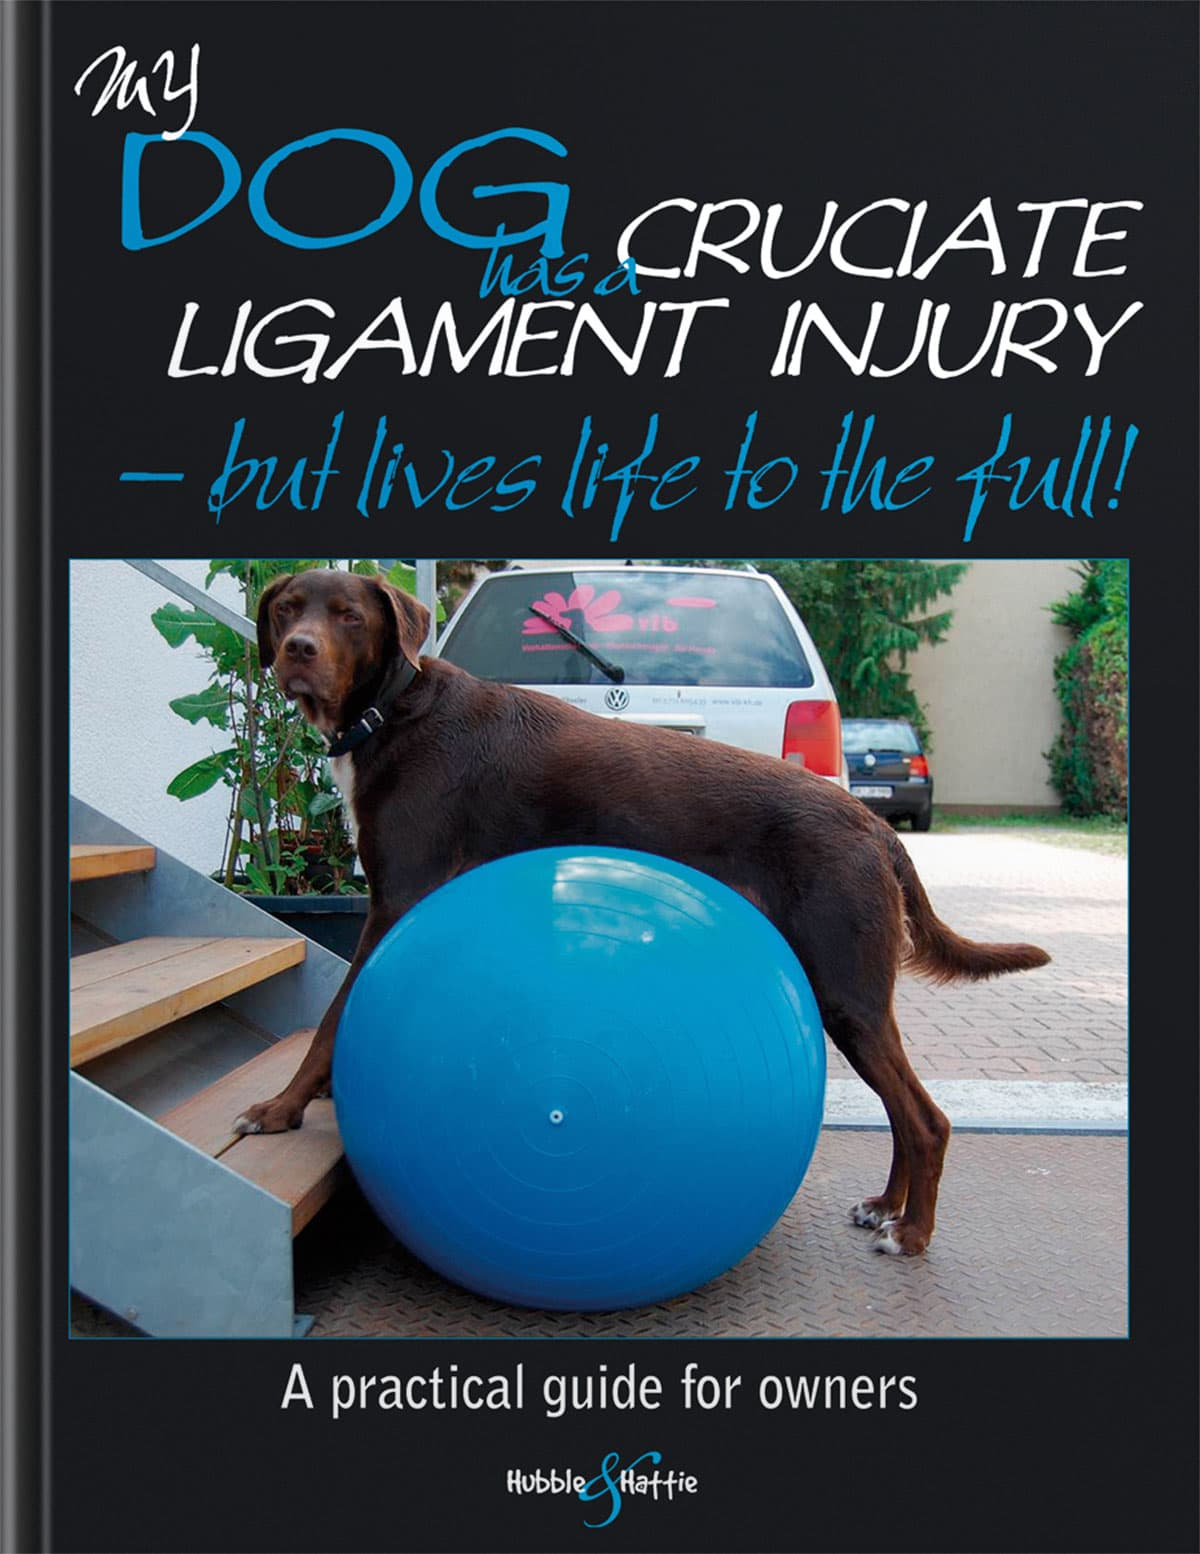 My dog has cruciate ligament injury – but lives life to the full!